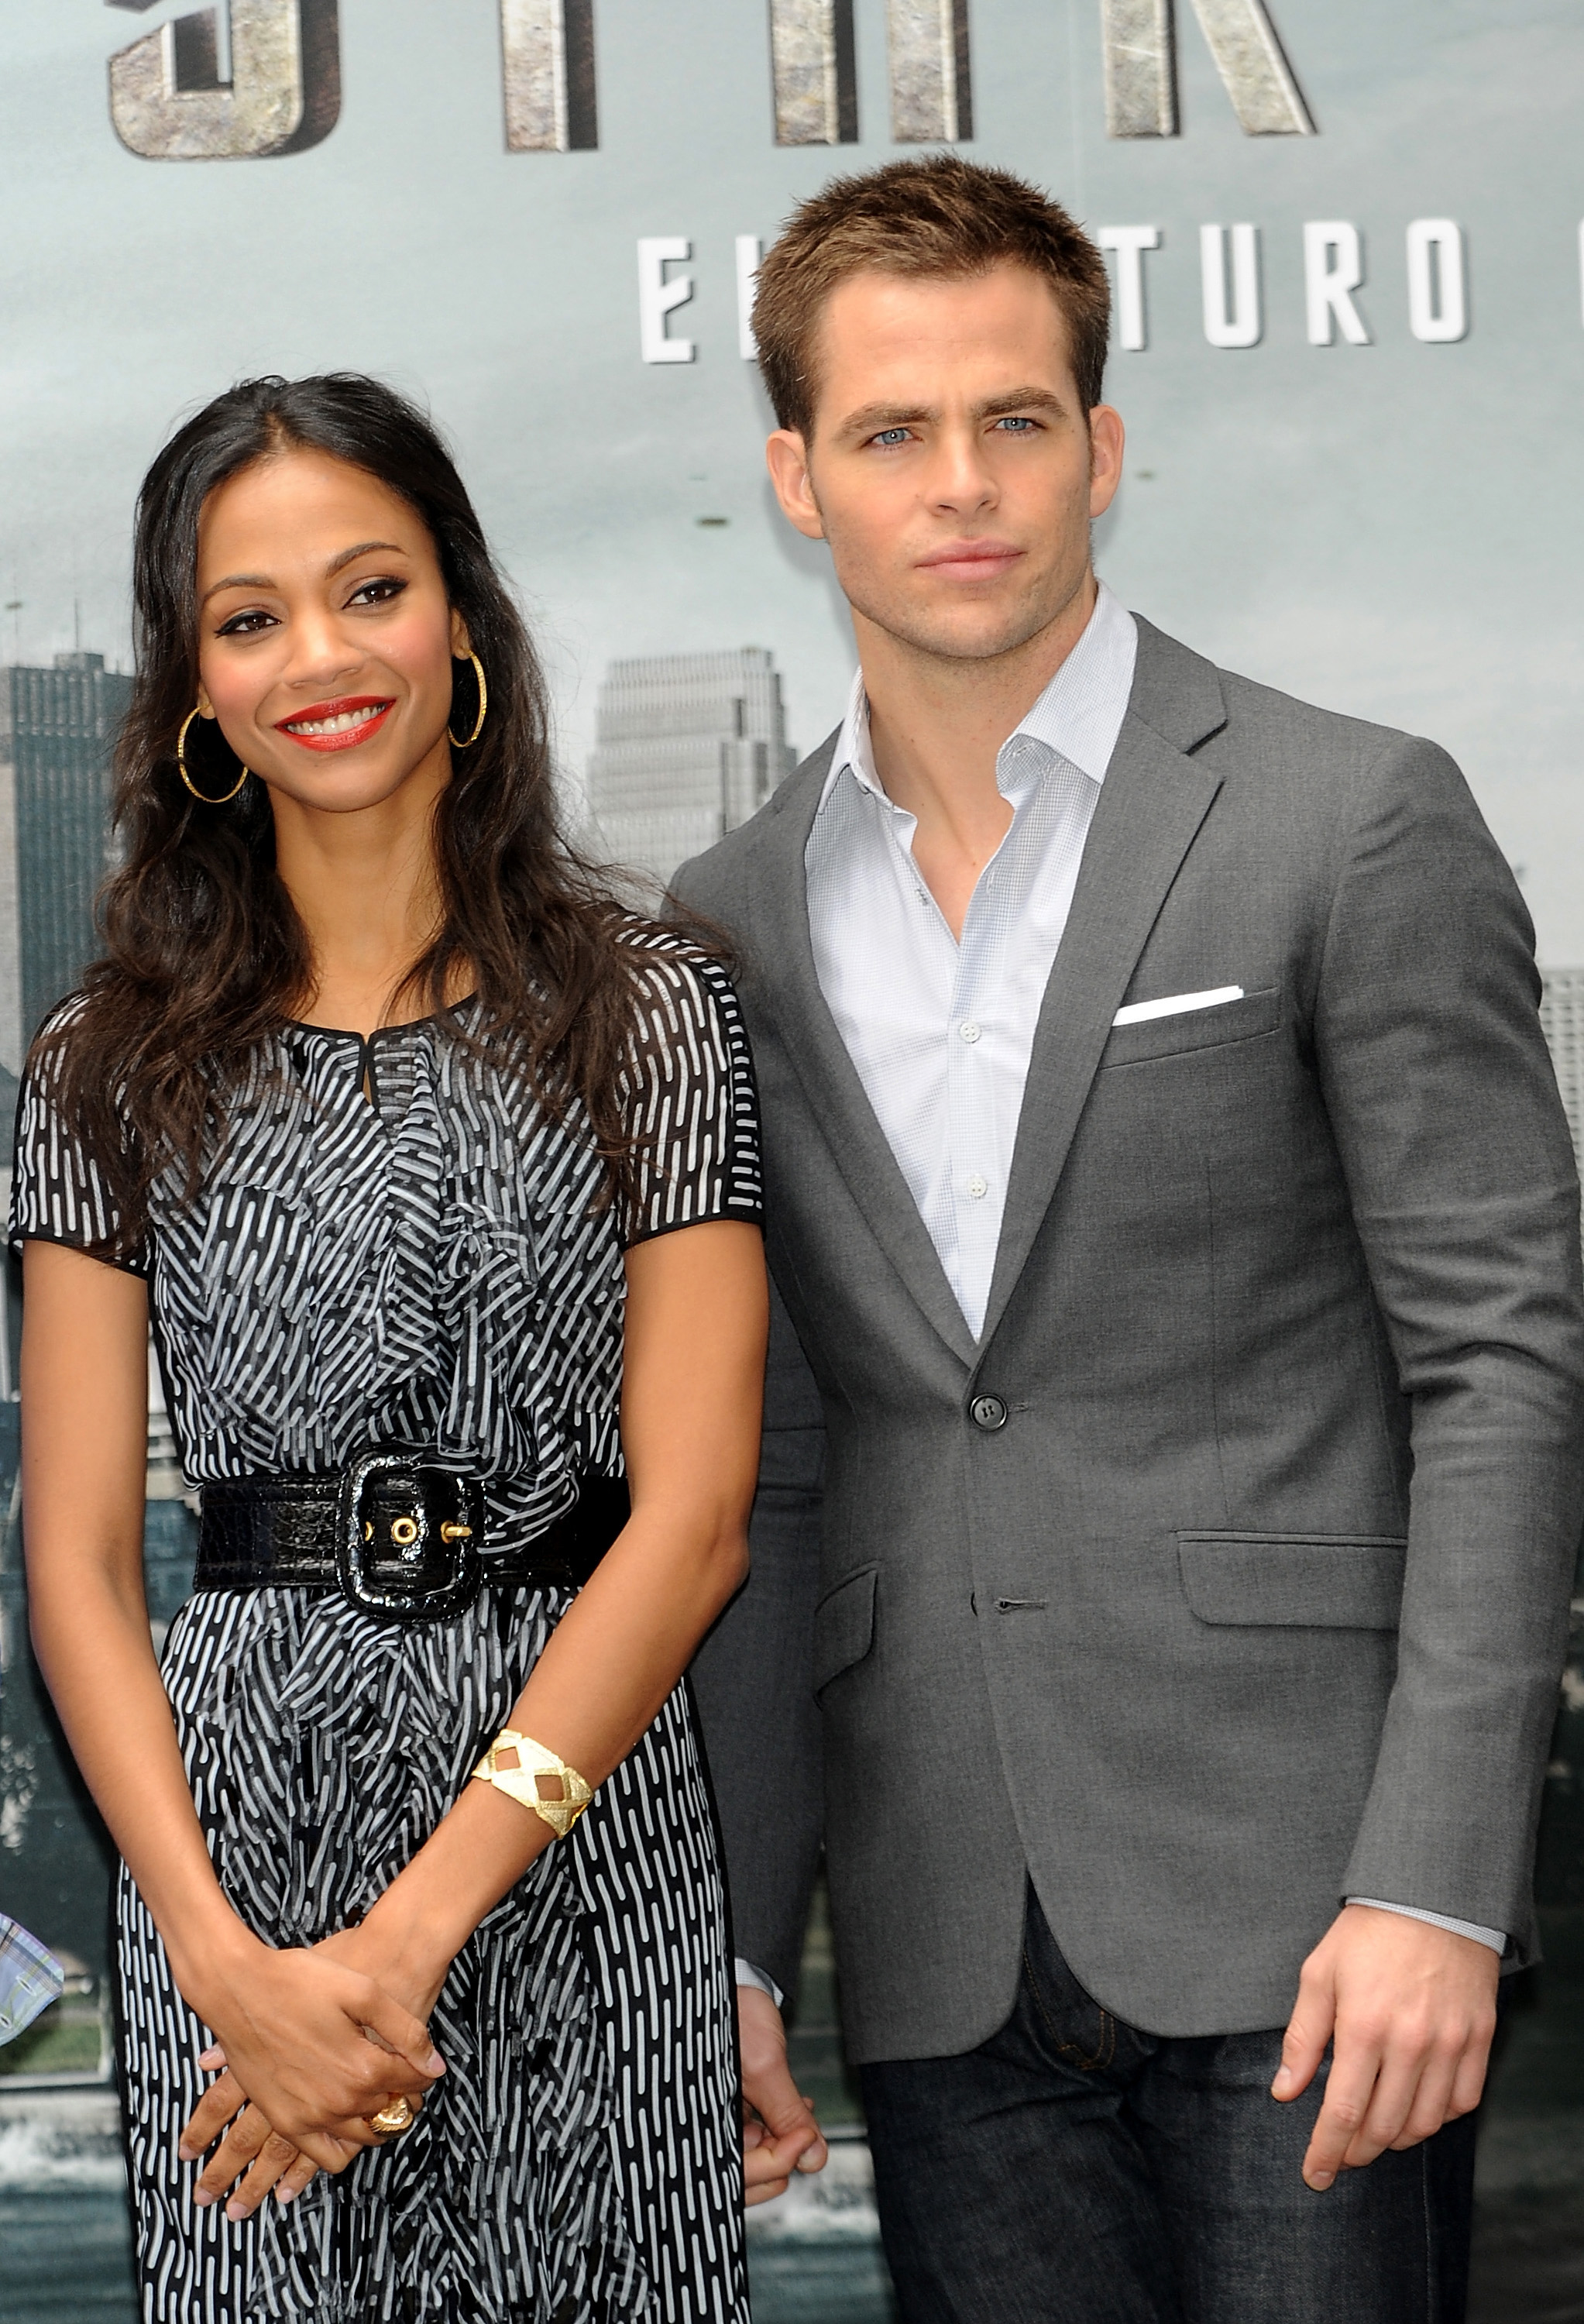 Zoe Saldana And Chris Pine Photos of Chris Pine, ...